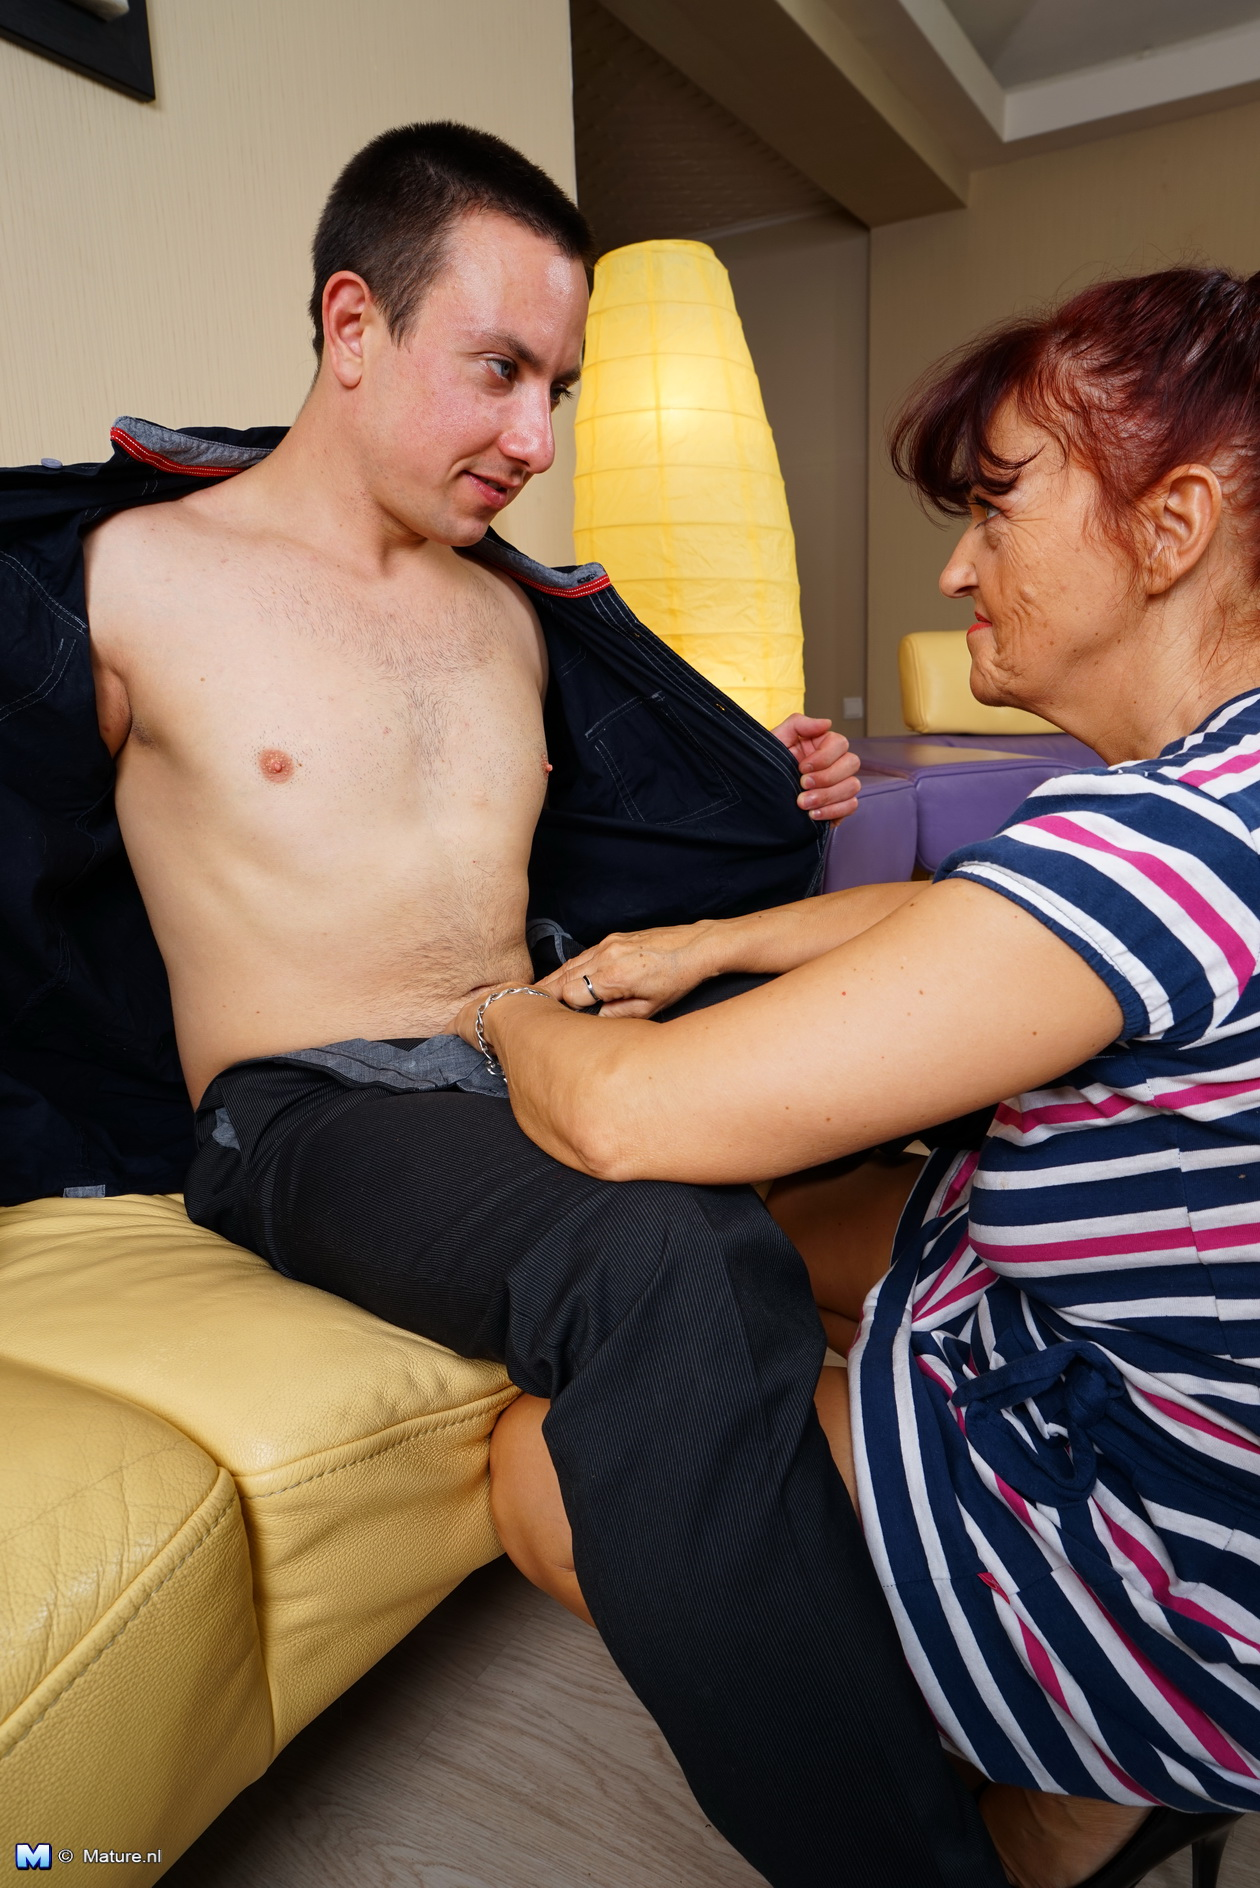 young guy penetrating grandmother #1